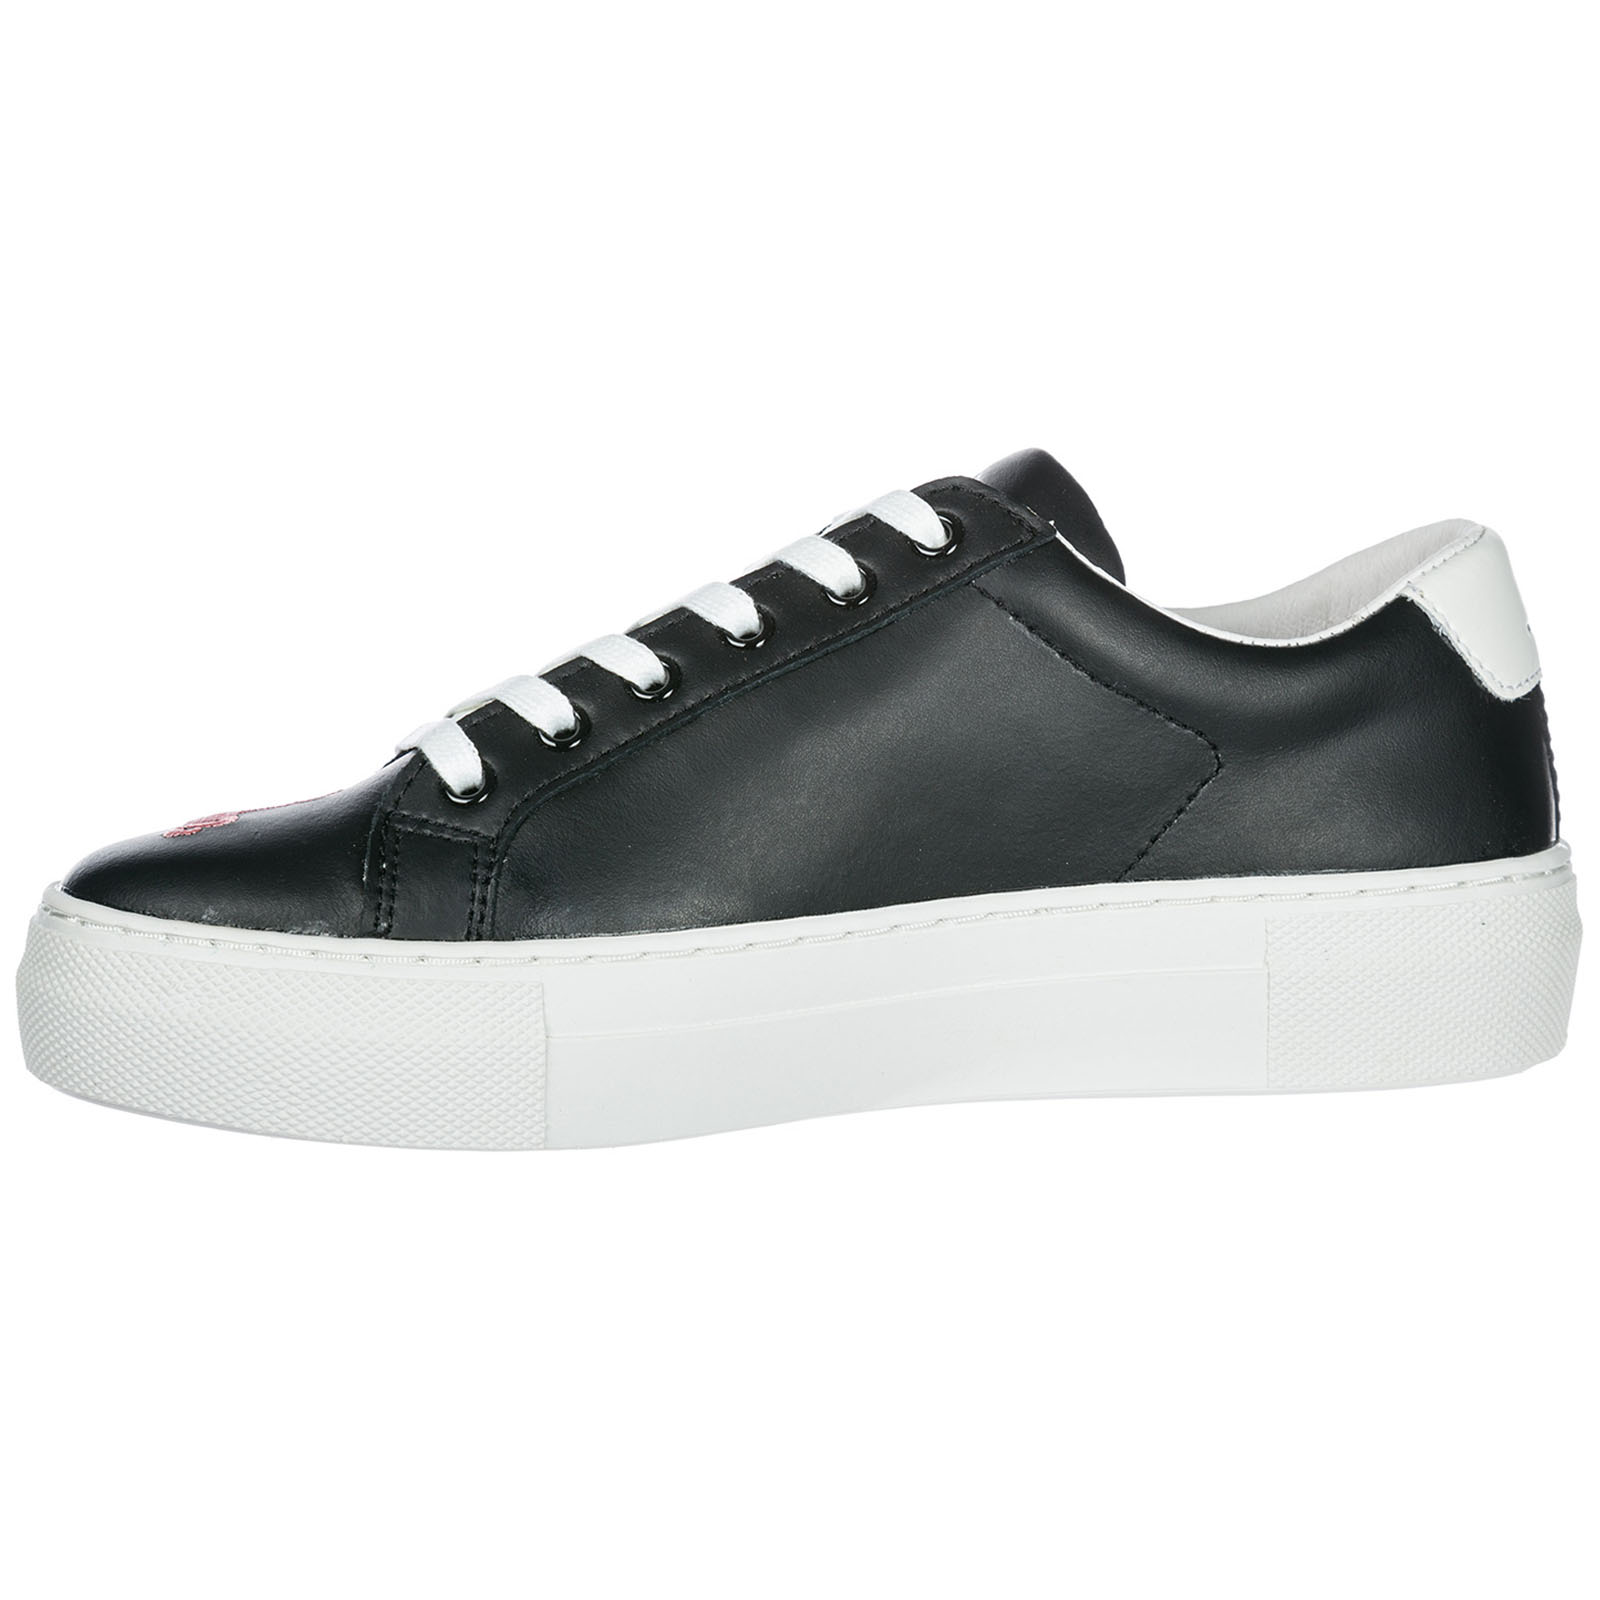 Women's shoes leather trainers sneakers victoria